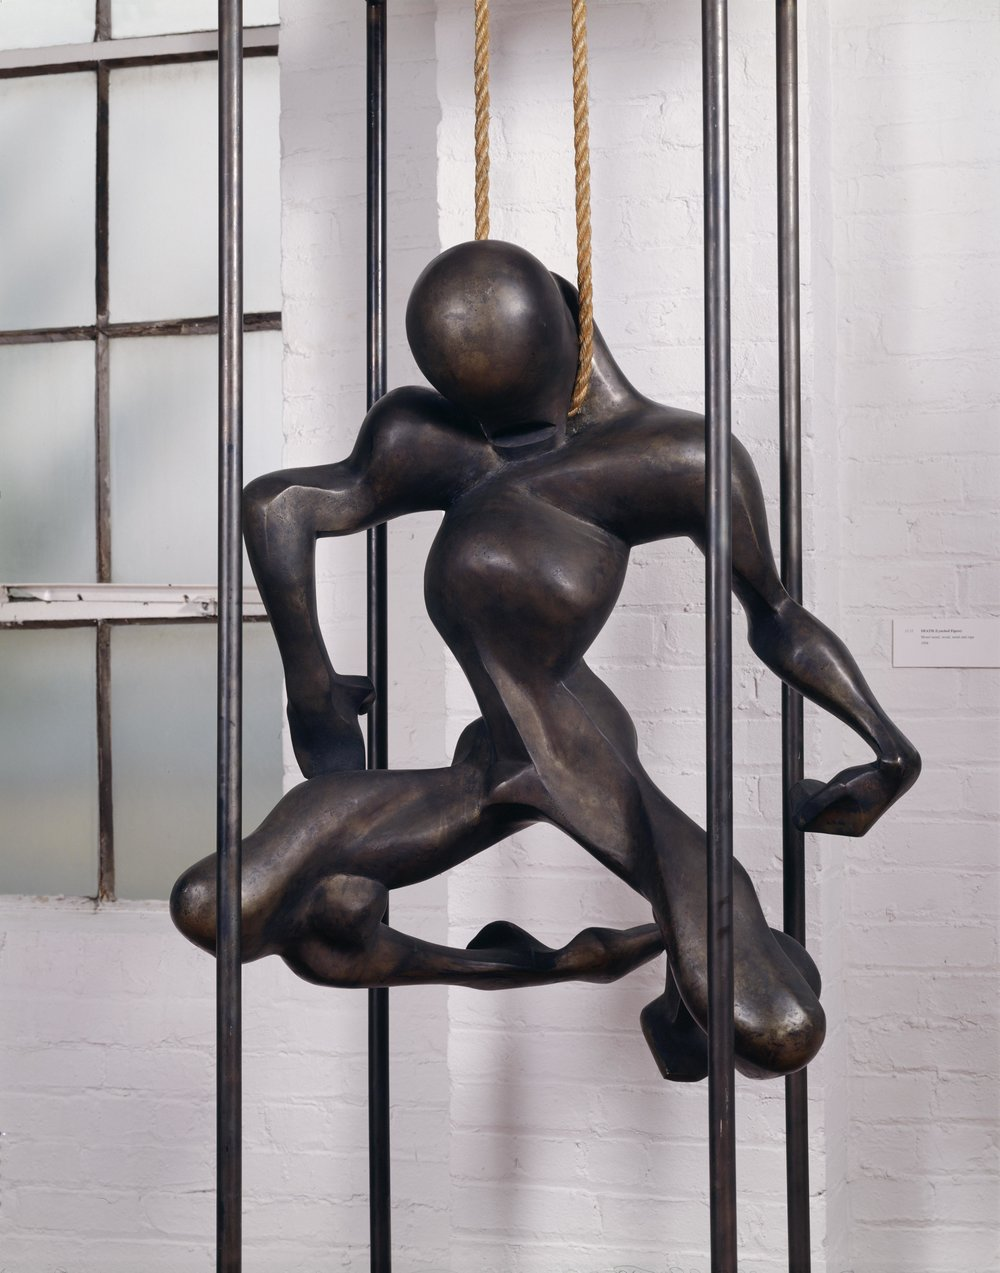 Death (Lynched Figure), 1934. Isamu Noguchi. Monel metal, steel, wood, rope. 88 3/4 x 31 7/8 x 22 1/8 in. Collection of The Isamu Noguchi Foundation and Garden Museum, New York. © The Isamu Noguchi Foundation and Garden Museum, New York / Artist Rights Society [ARS]. Photo by Sara Wells.   Reproduction, including downloading of Isamu Noguchi works is prohibited by copyright laws and international conventions without the express written permission of Artists Rights Society (ARS), New York.